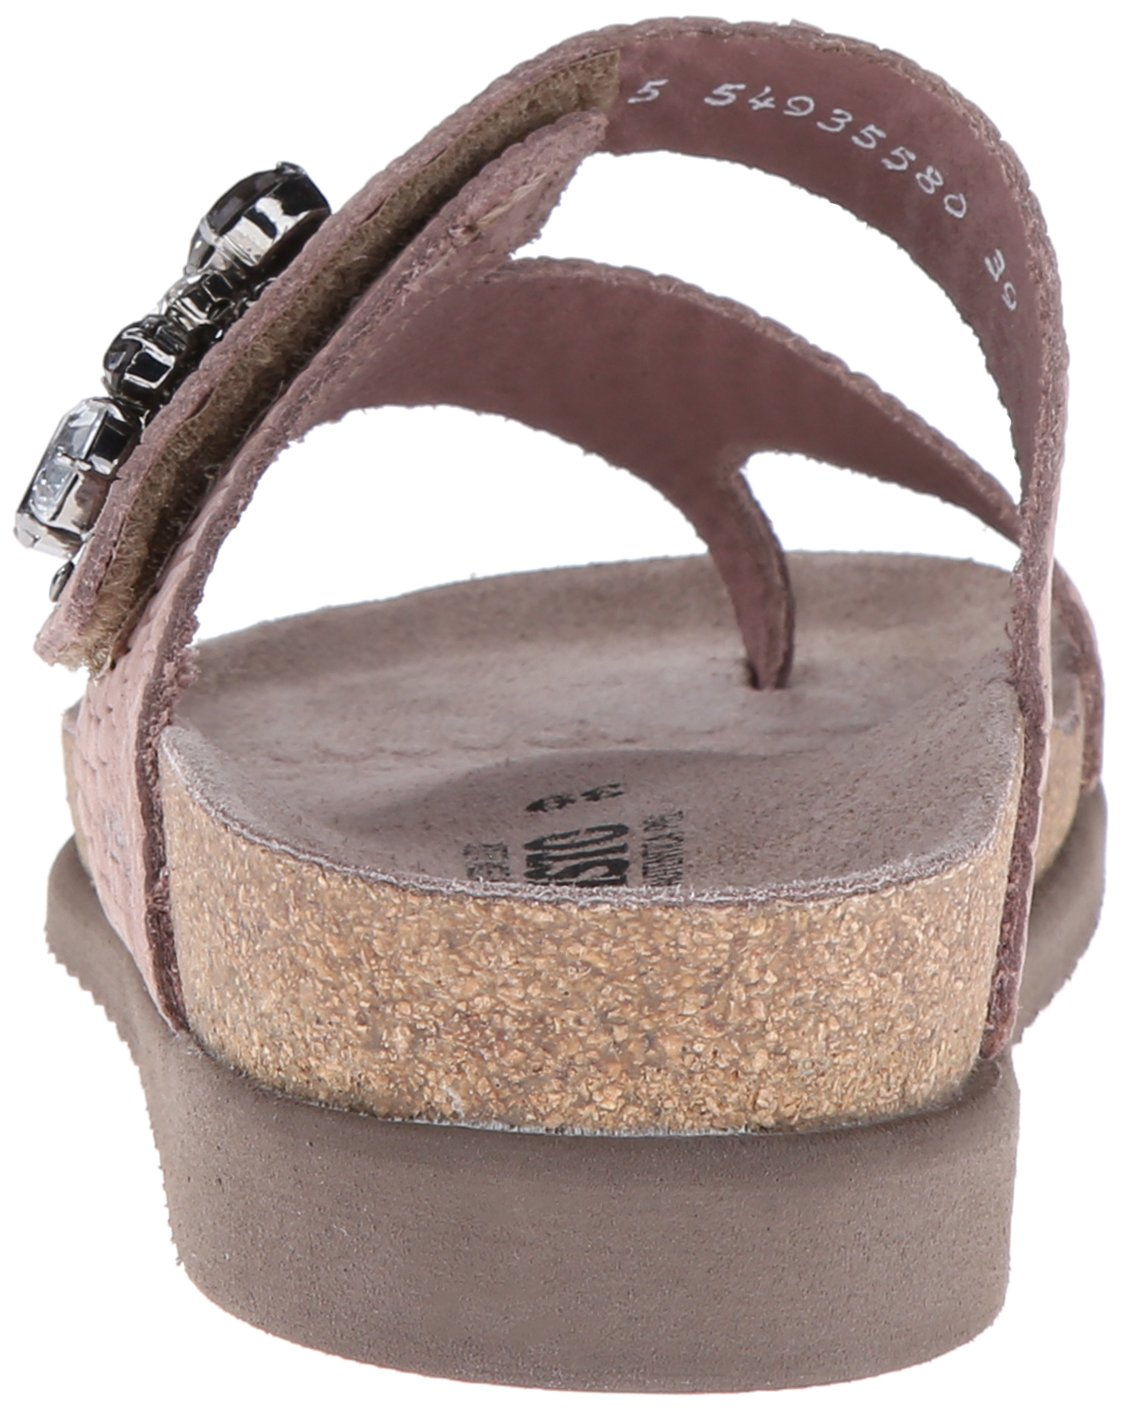 Mephisto Women's Halice Flip Flop, Old Pink Rio, 9 M US by Mephisto (Image #2)